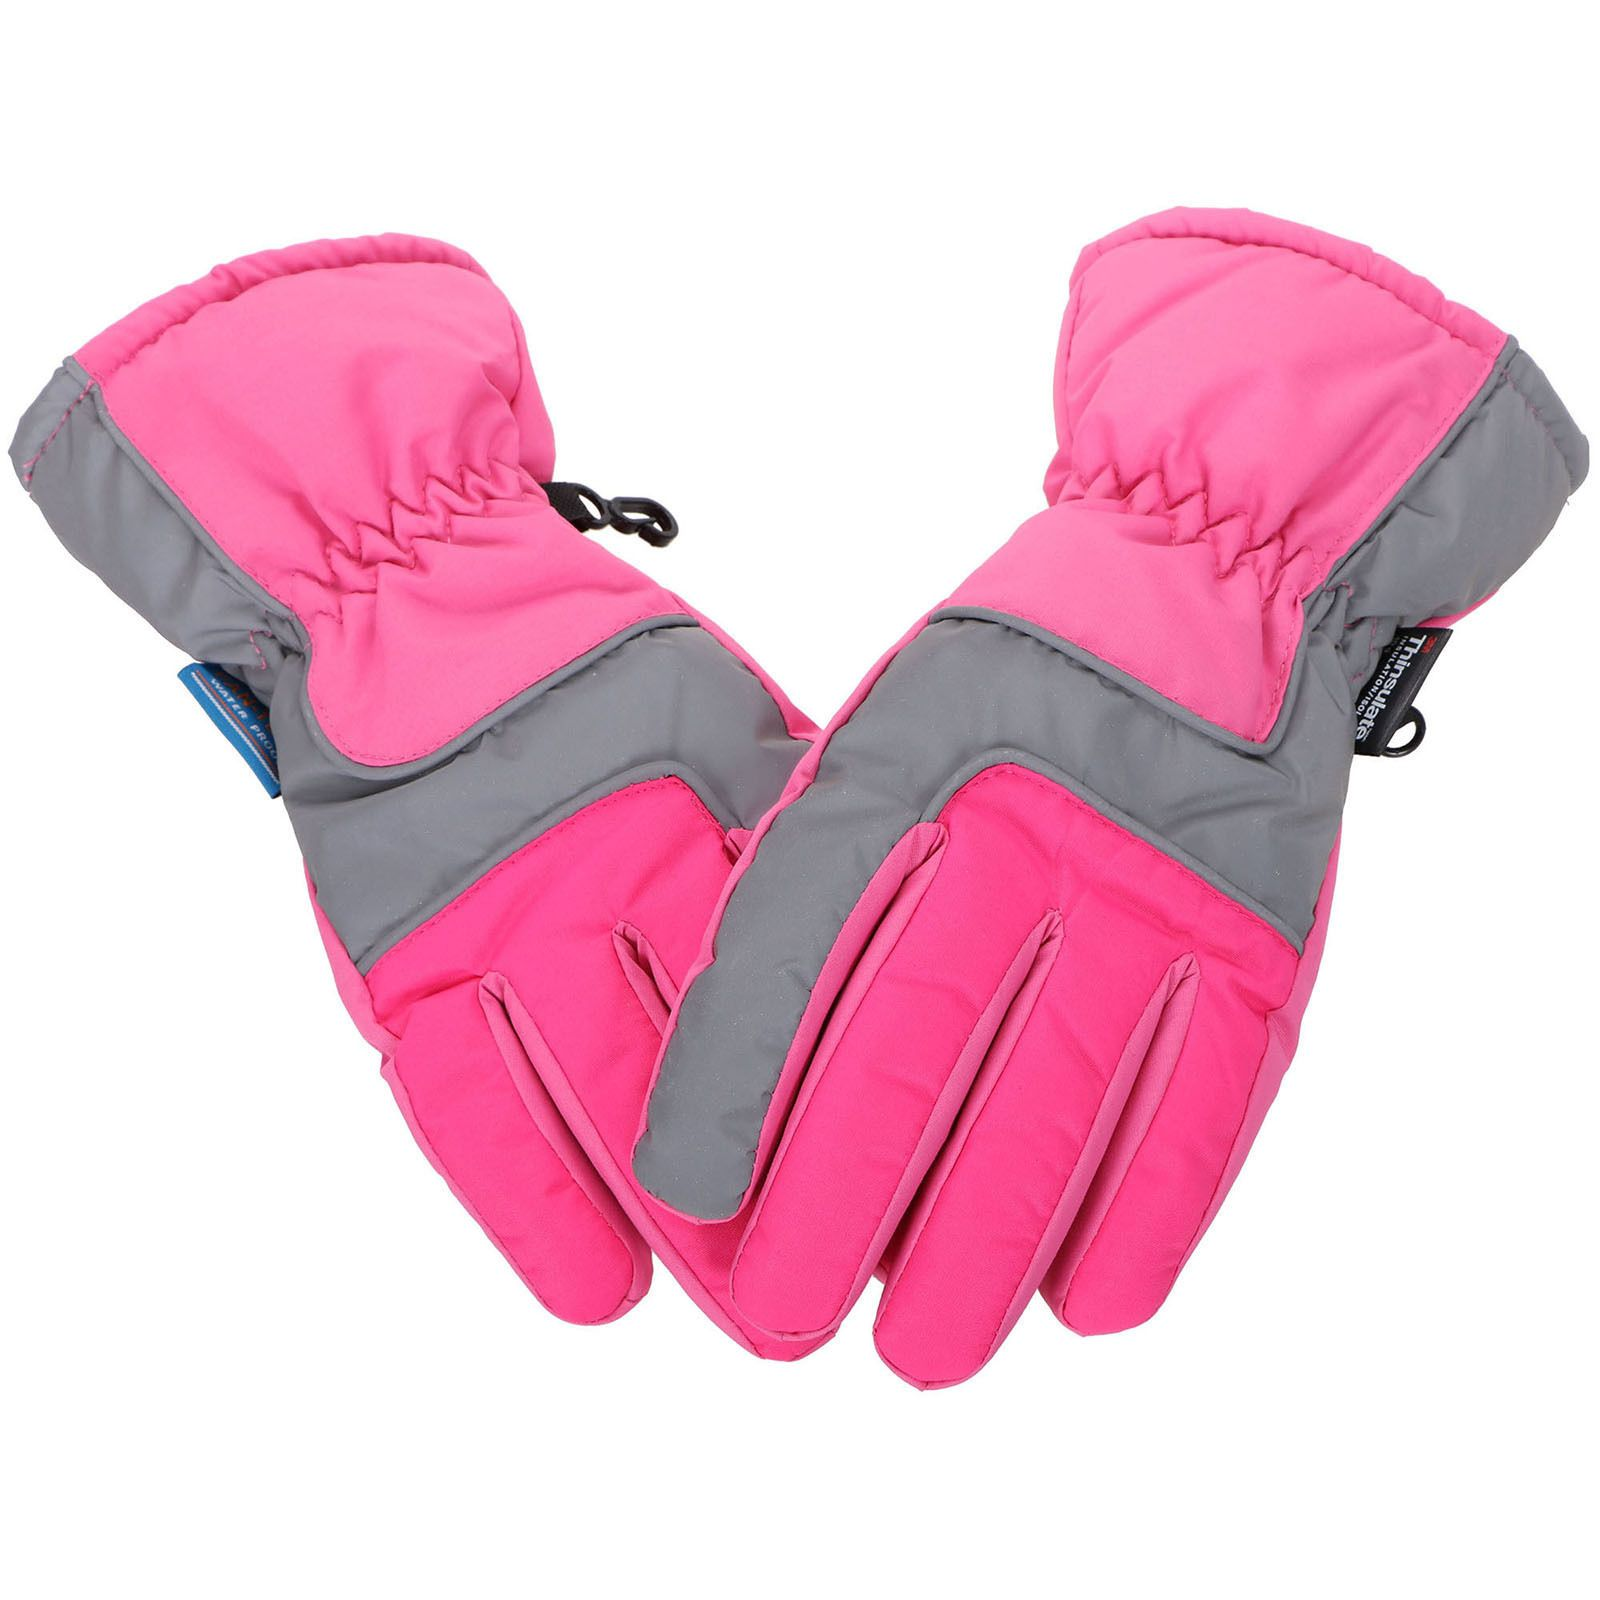 b7ac45791 Gloves and Mittens 57919: Kids Girls S Winter Warm Sports Windproof Waterproof  Ski Gloves Snowboard -> BUY IT NOW ONLY: $13.99 on #eBay #gloves #mittens  ...